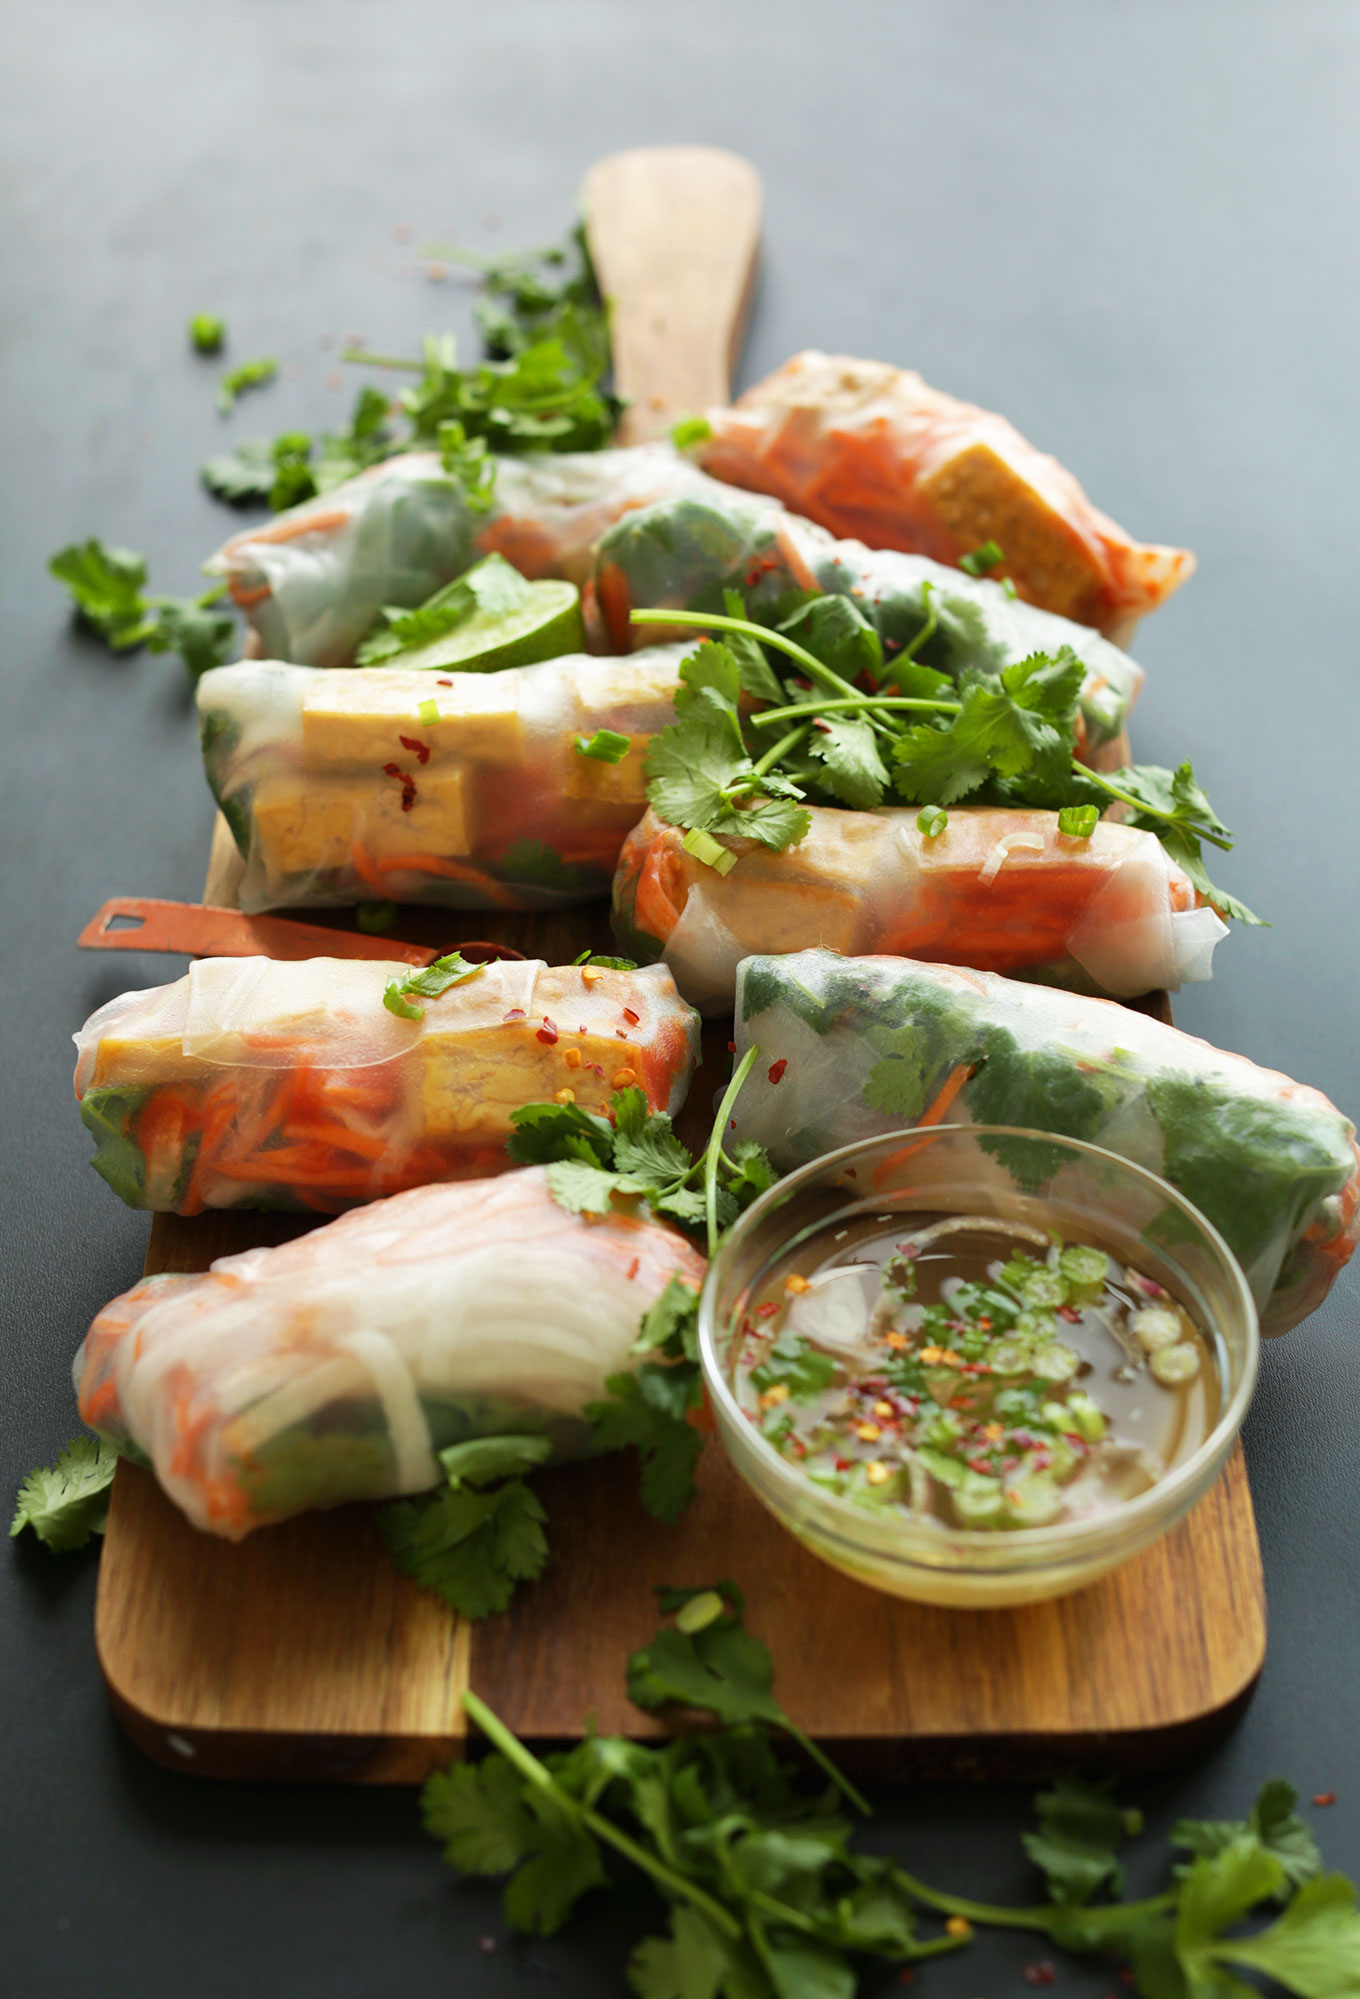 Wood cutting board filled with our gluten-free vegan Bahn Mi Spring Rolls recipe